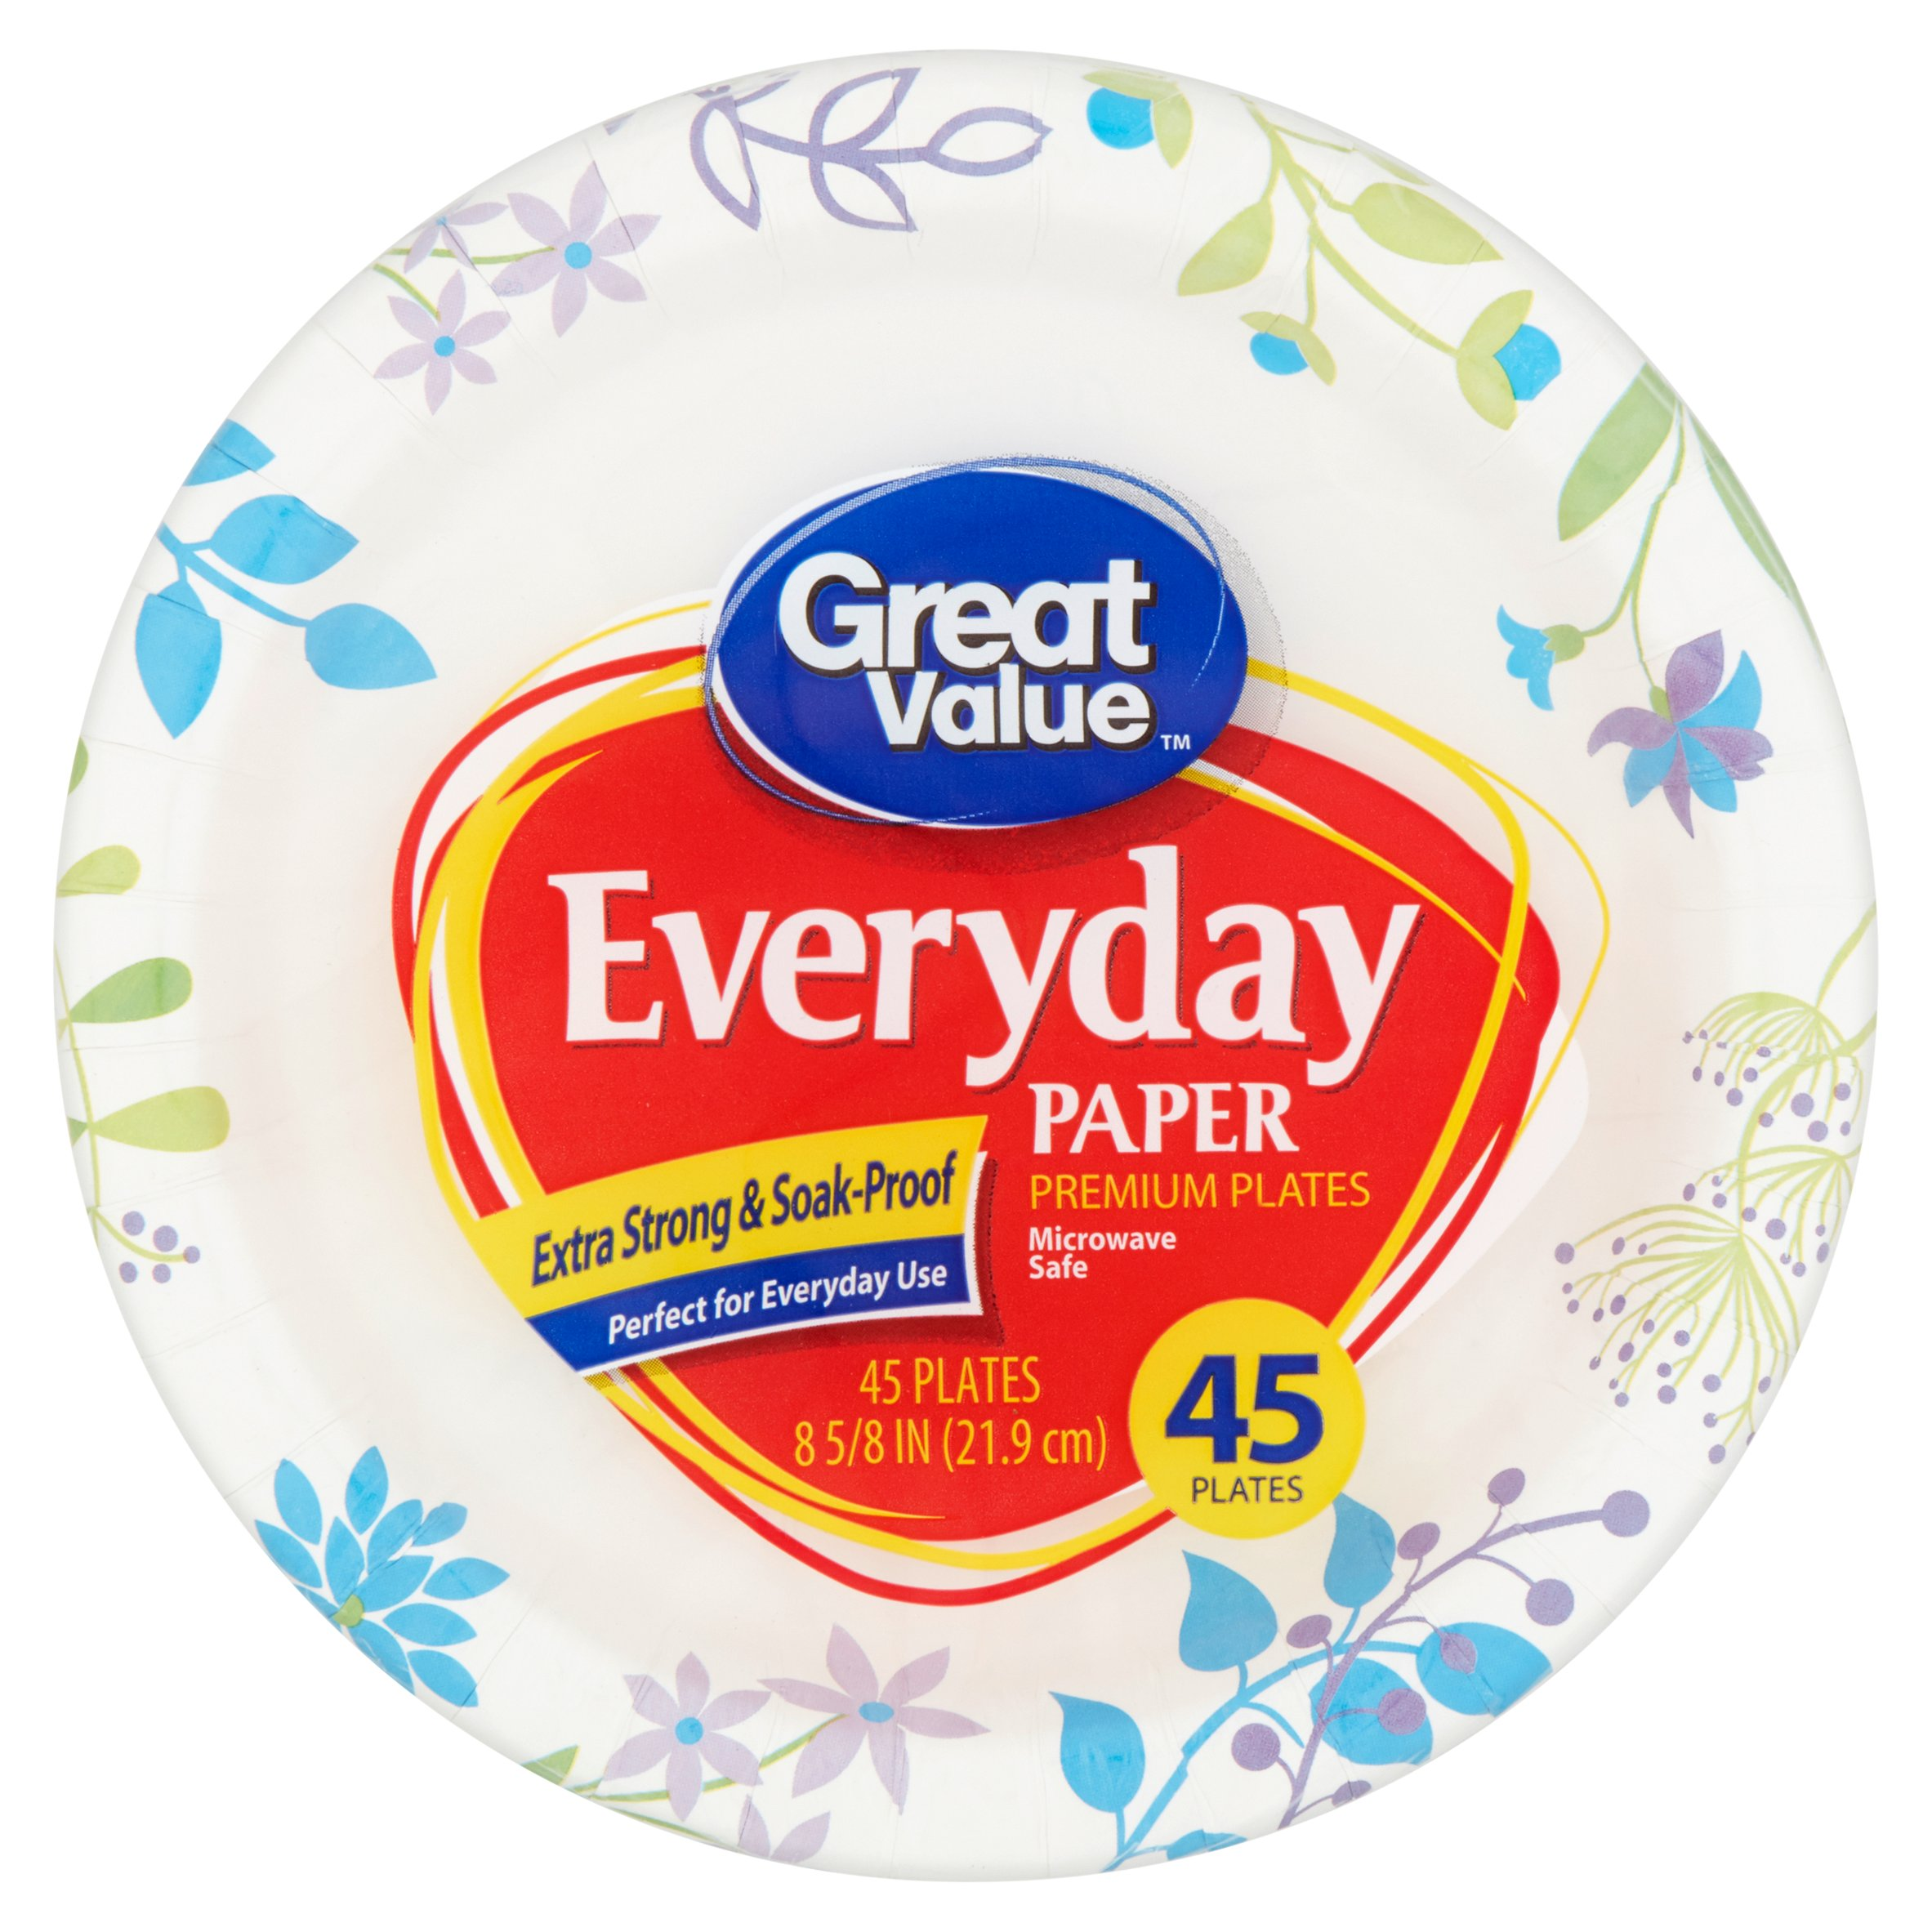 "Great Value Everyday Premium Paper Plates, 8 5/8"", 45 Count"